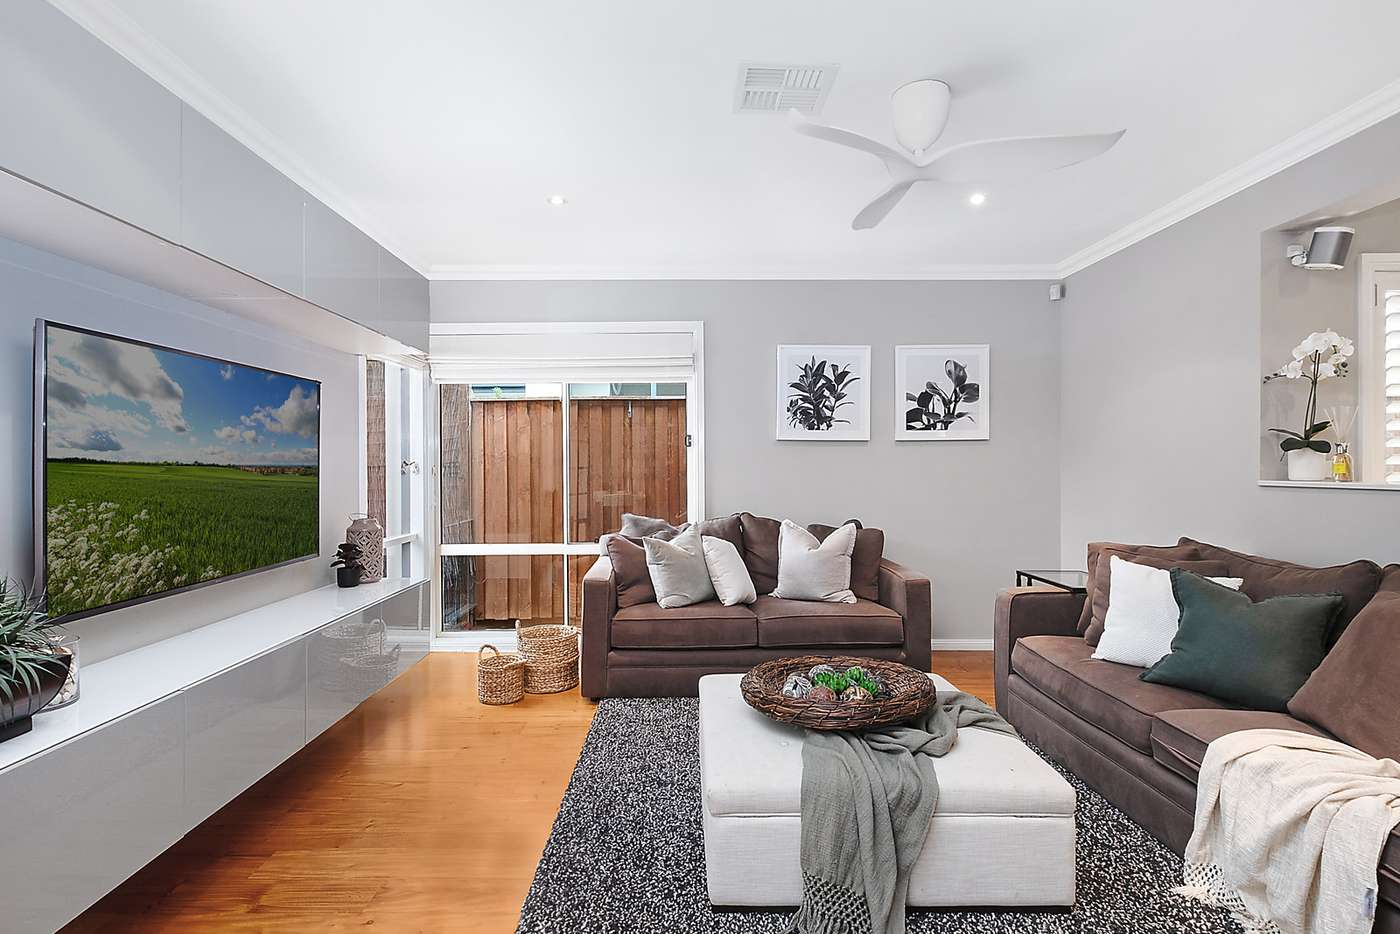 Fifth view of Homely house listing, 152 Perfection Avenue, Stanhope Gardens NSW 2768